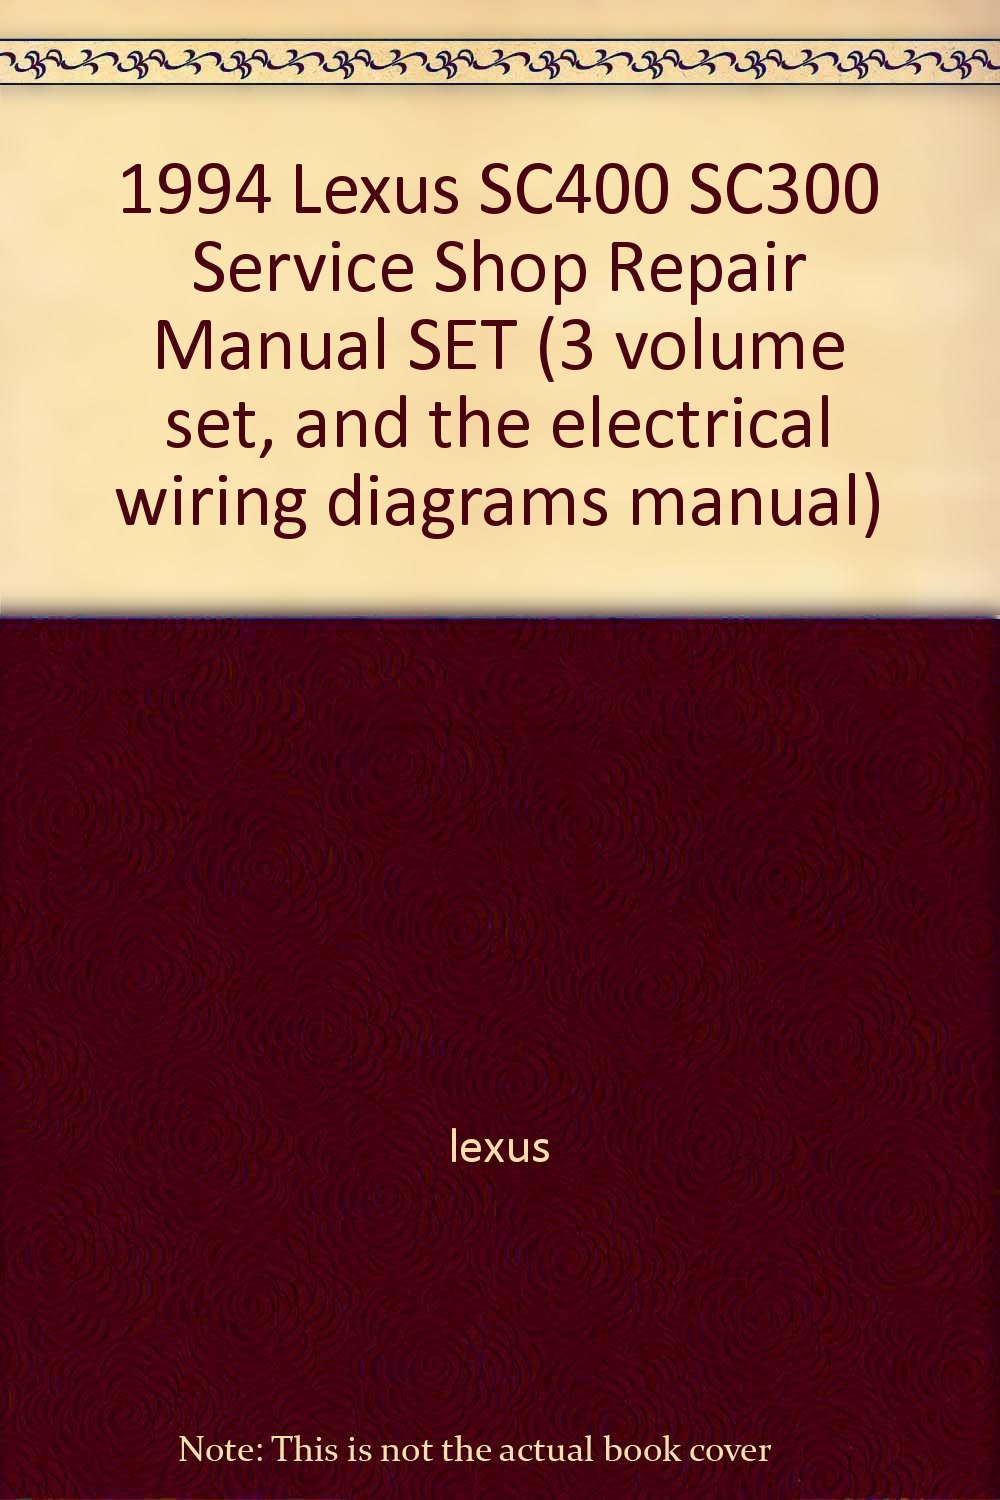 1994 Lexus SC400 SC300 Service Shop Repair Manual SET (3 ... on 1994 camry wiring diagram, 1994 4runner wiring diagram, 1994 corolla wiring diagram, 1994 mustang wiring diagram, 1994 300zx wiring diagram, 1994 civic wiring diagram, 1994 land cruiser wiring diagram, 1994 supra wiring diagram, 1994 xj12 wiring diagram,